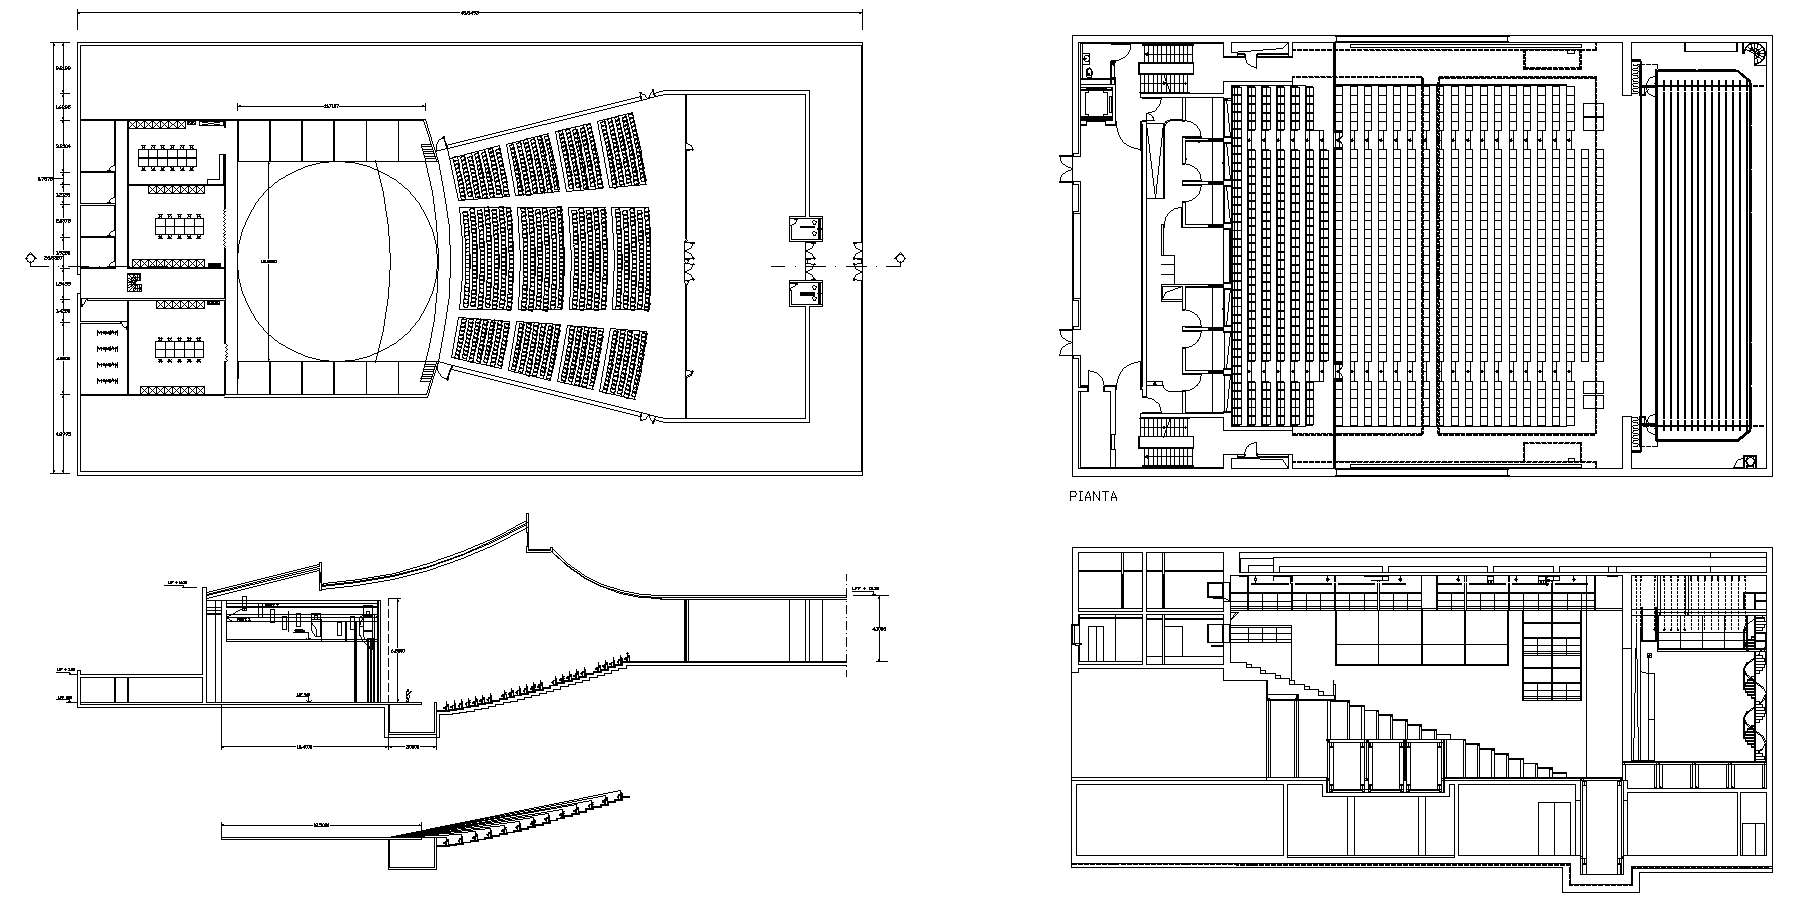 auditorium section   free cad blocks  drawings download center. auditorium section